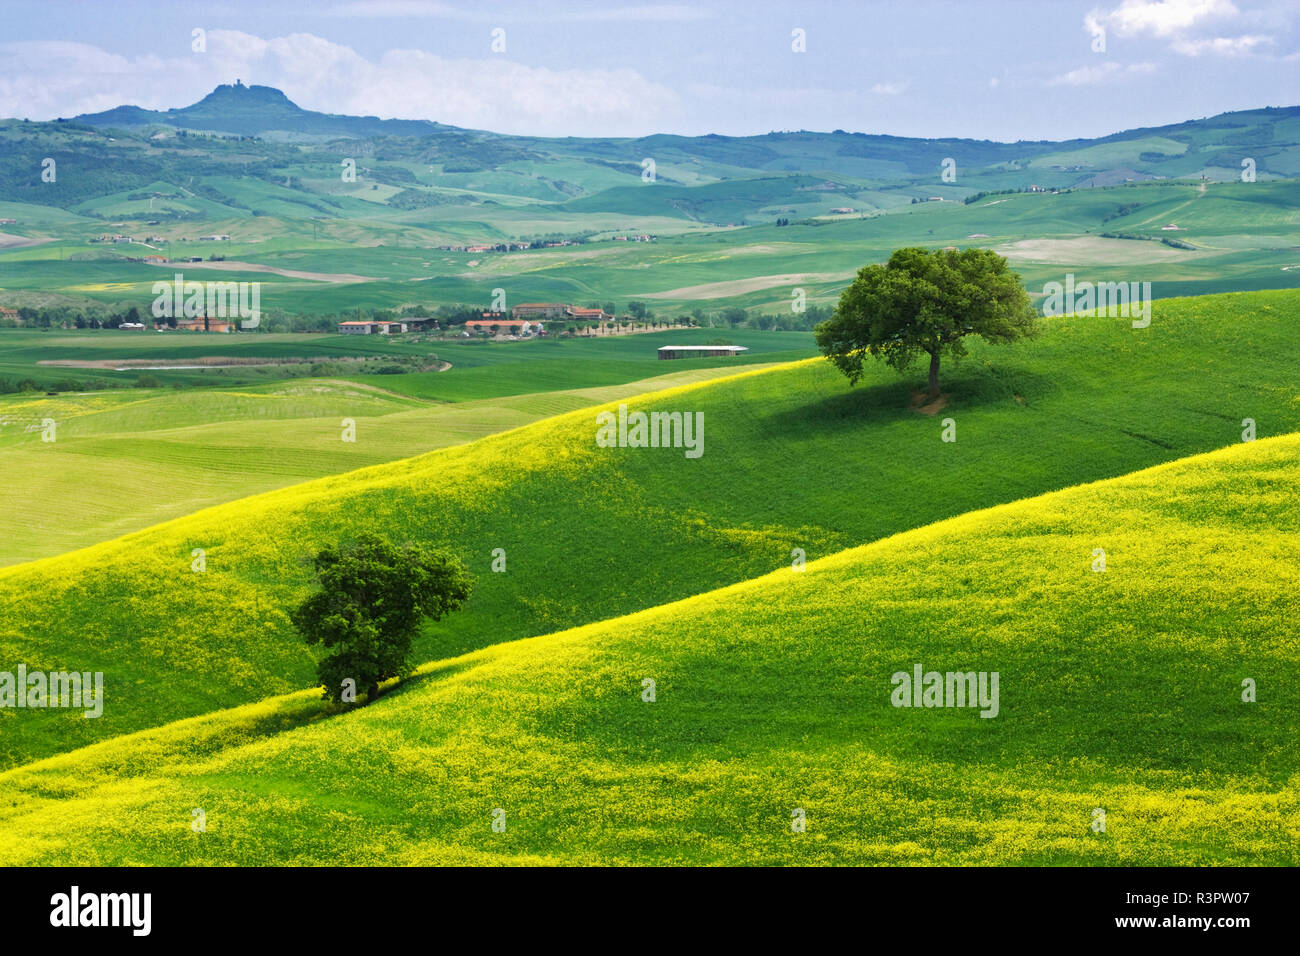 Italy, Tuscany. Landscape with villas. Credit as: Dennis Flaherty / Jaynes Gallery / DanitaDelimont. com - Stock Image